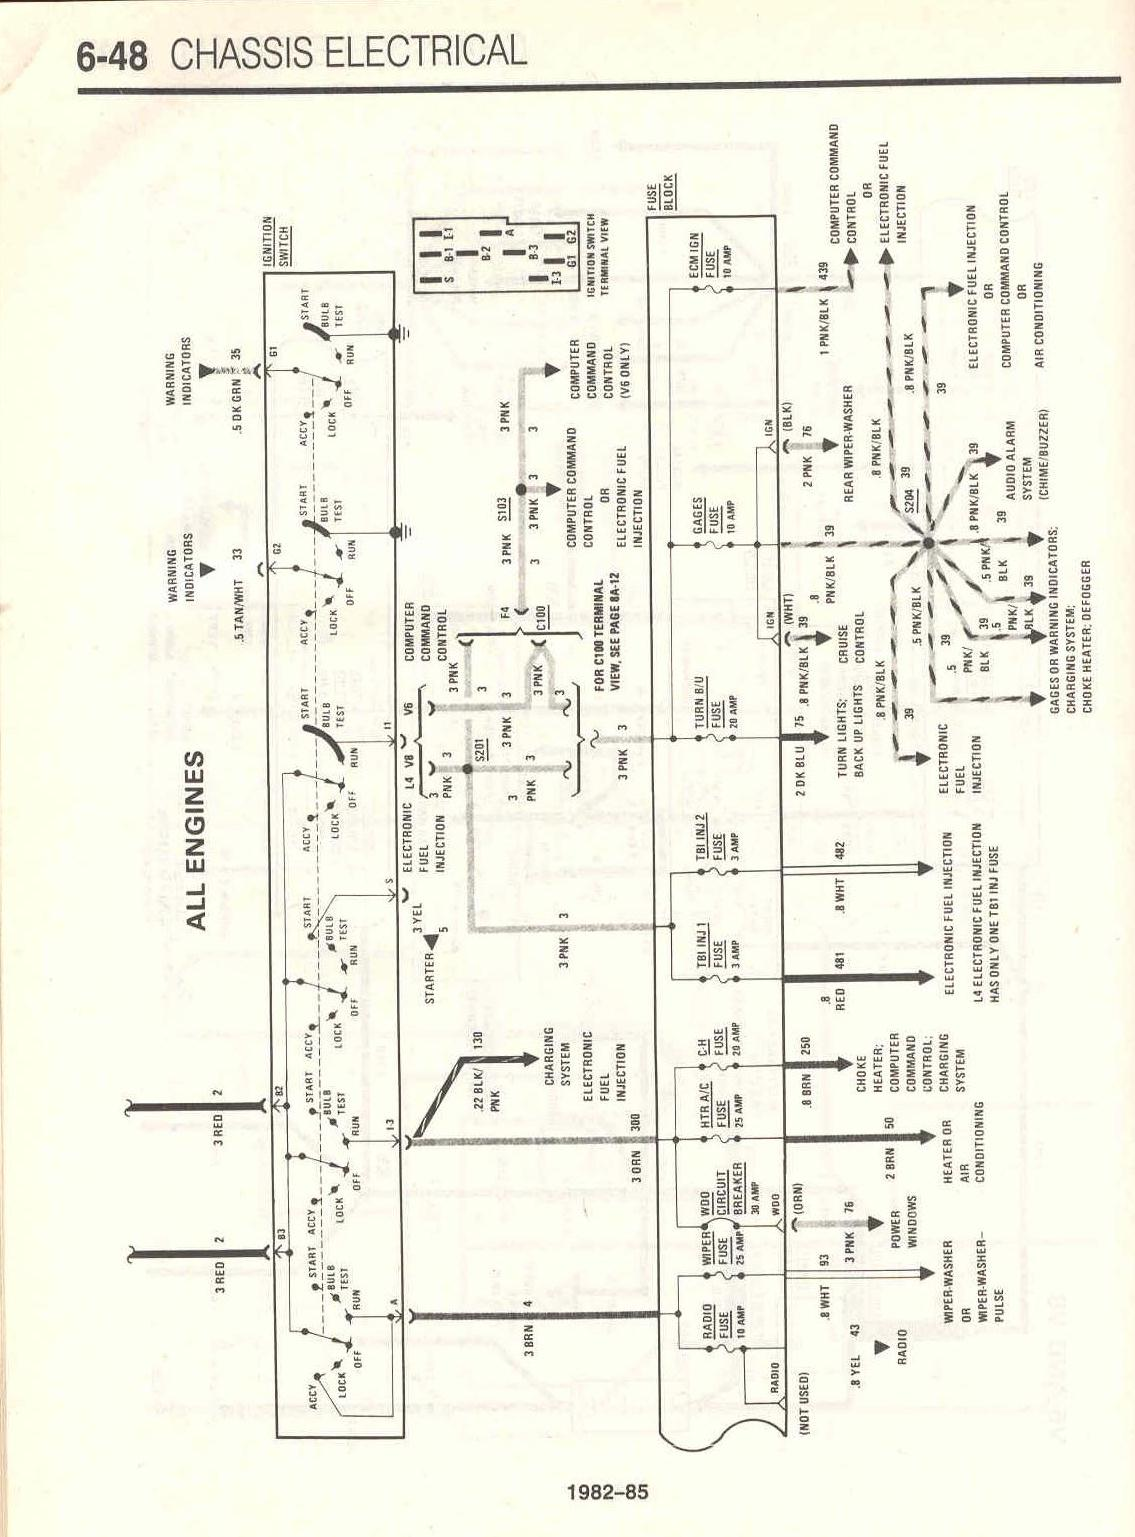 90 camaro distributor wiring diagram 85 camaro distributor wiring diagram car info